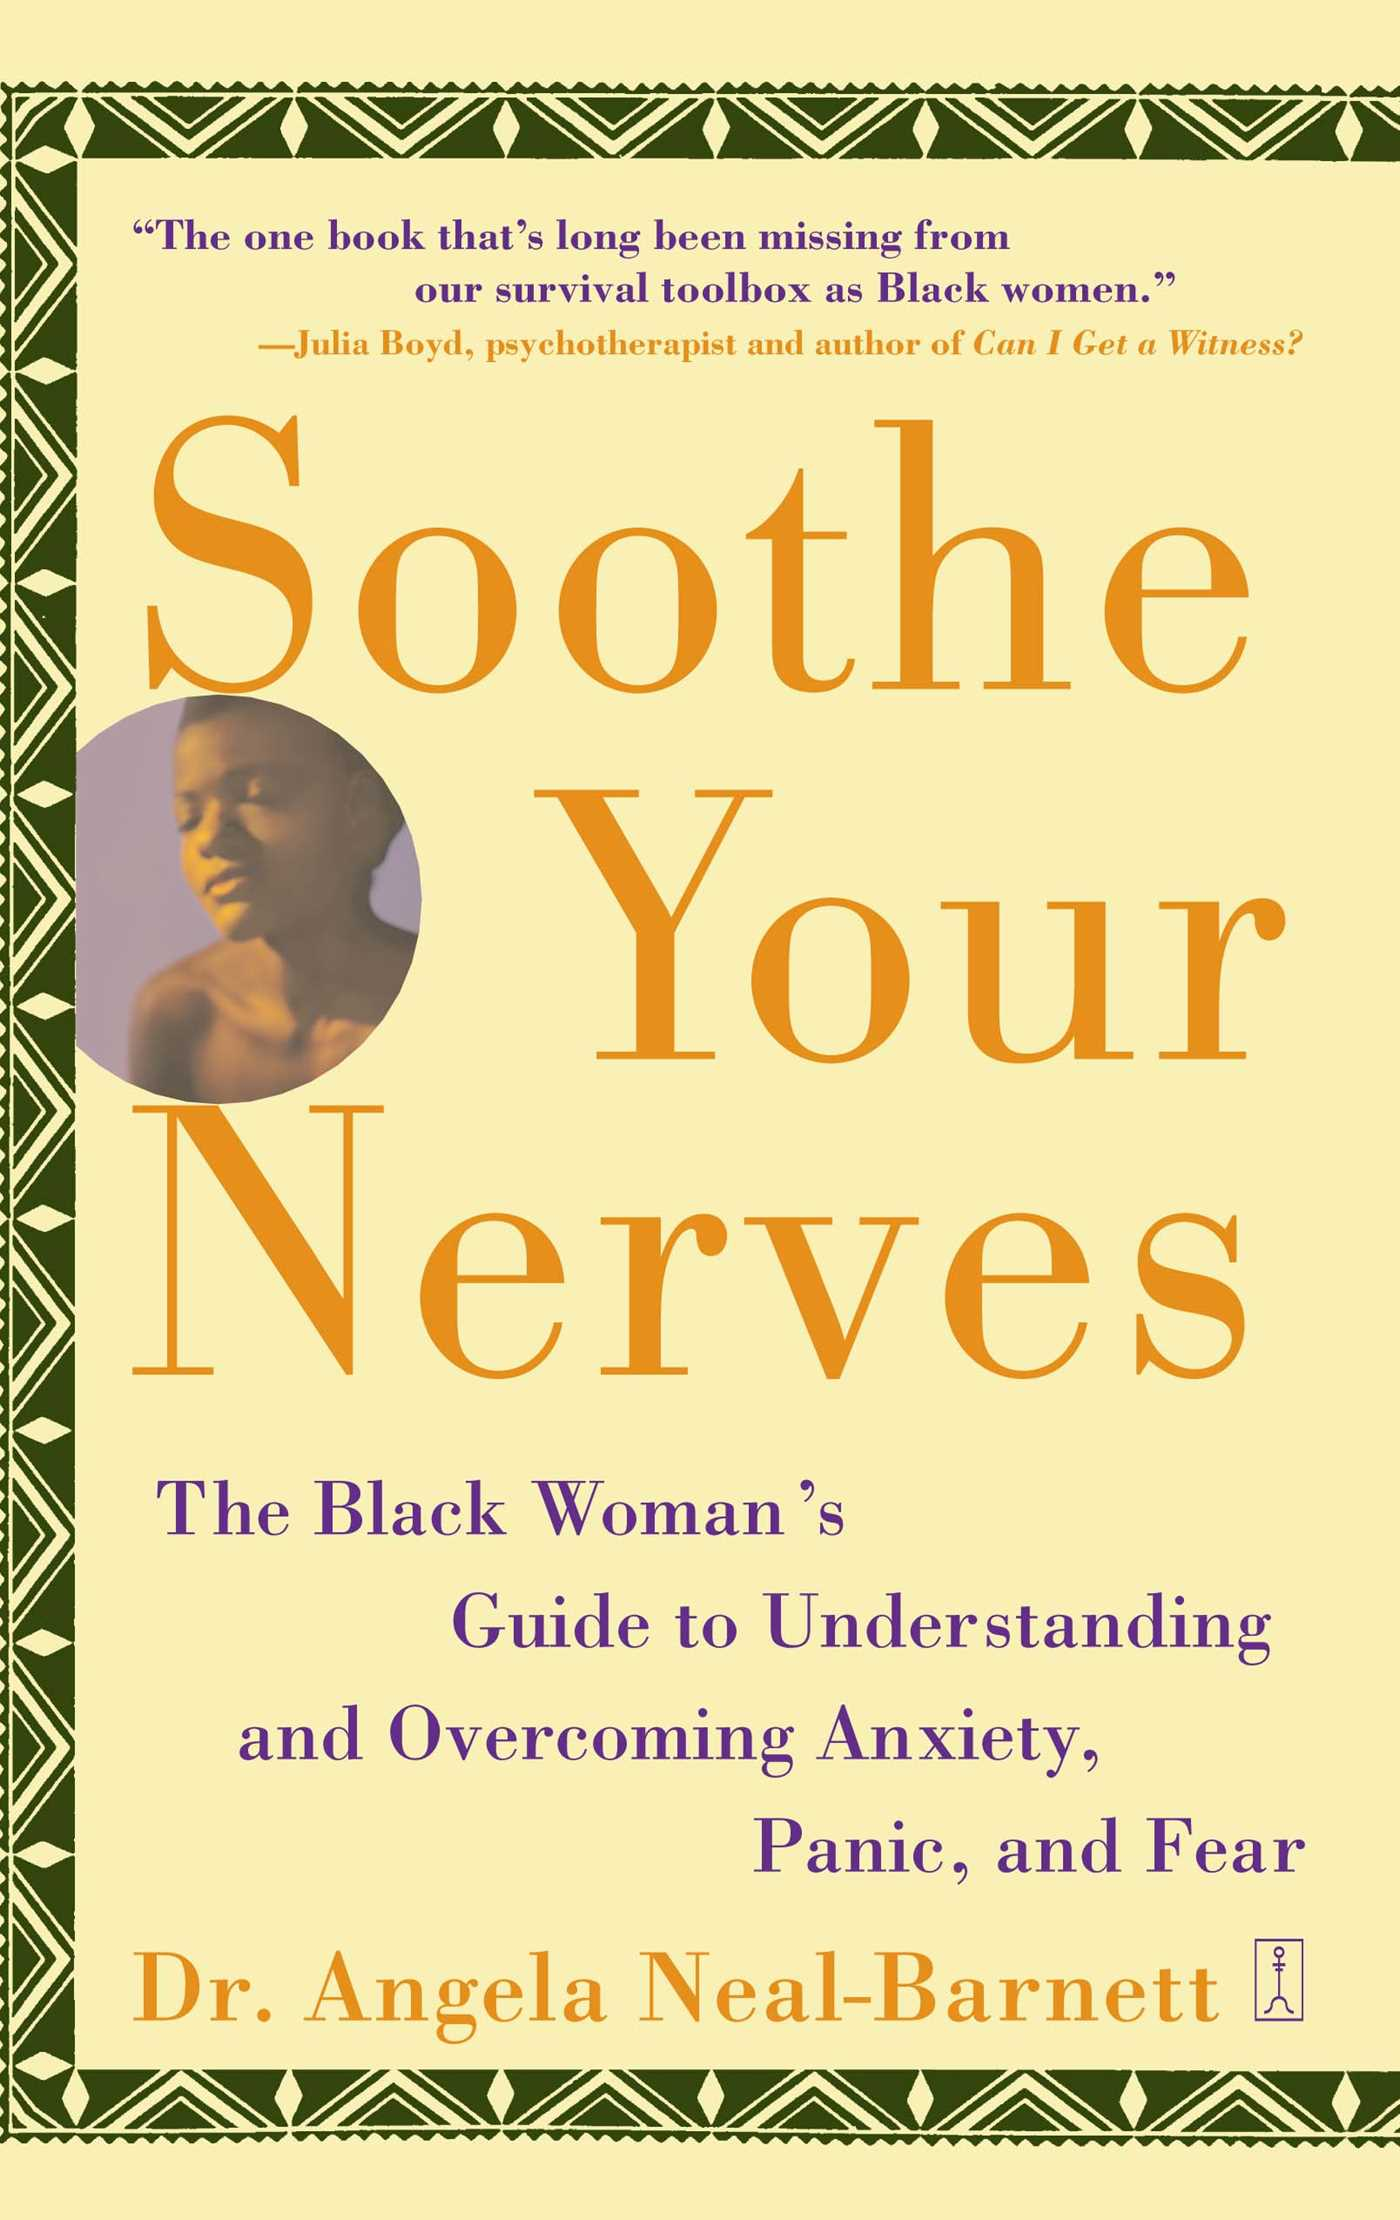 Soothe-your-nerves-9780743225380_hr